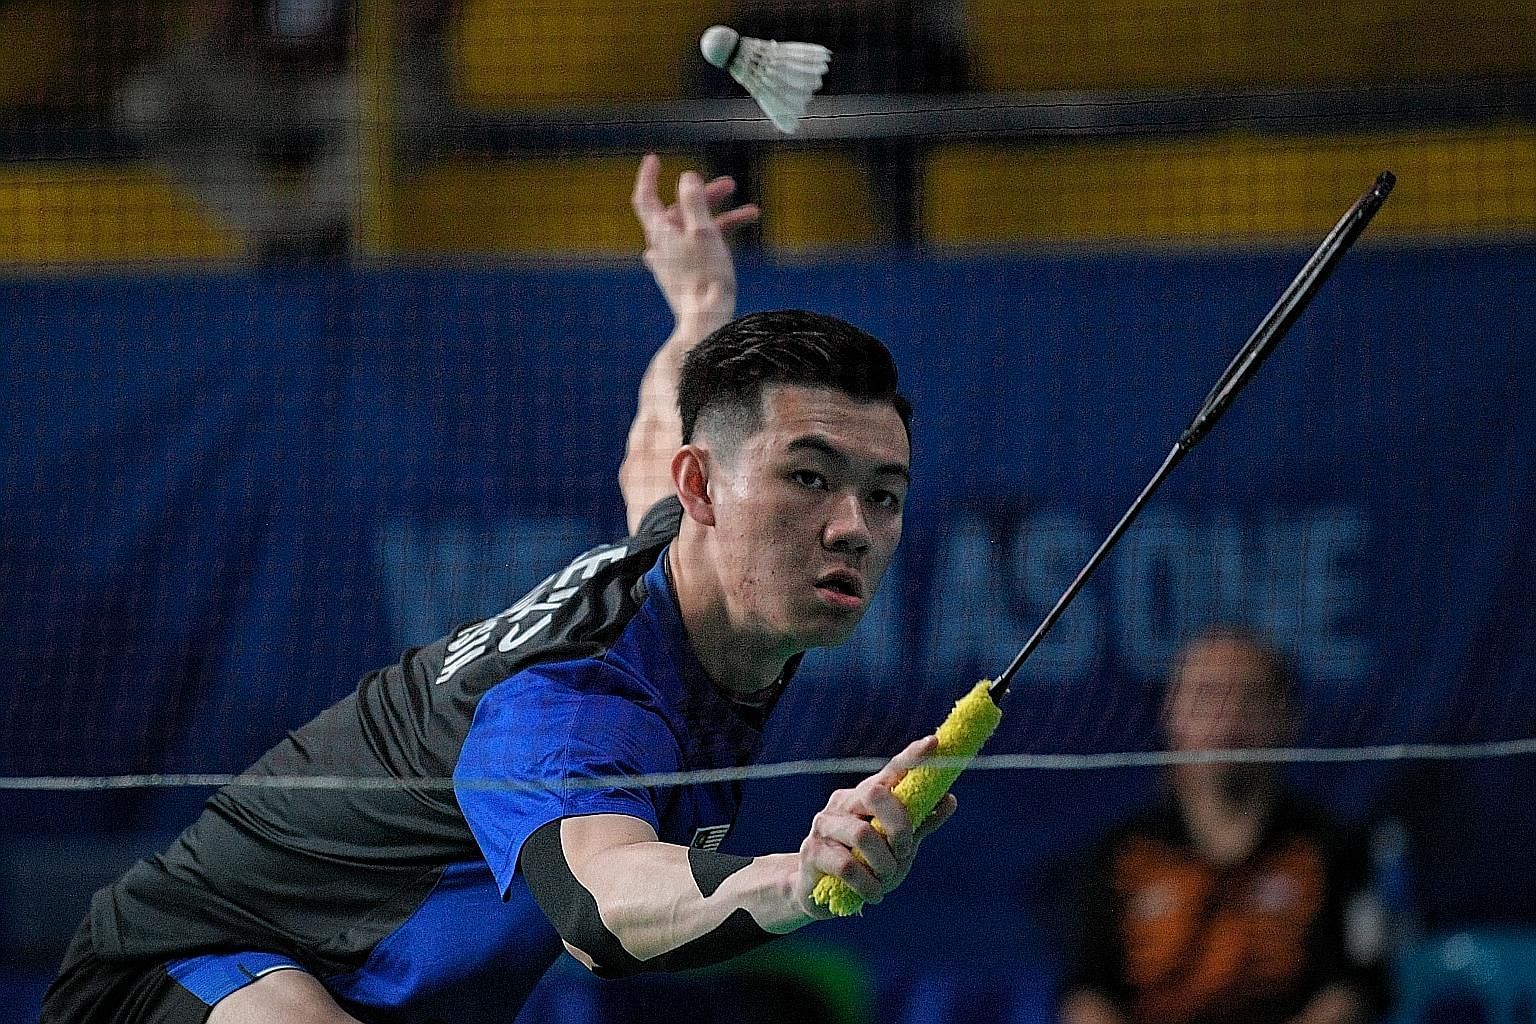 Malaysia's Lee Zii Jia returning to Singapore's Joel Koh during their last-16 match in Manila on Thursday. He won 21-17, 21-10.